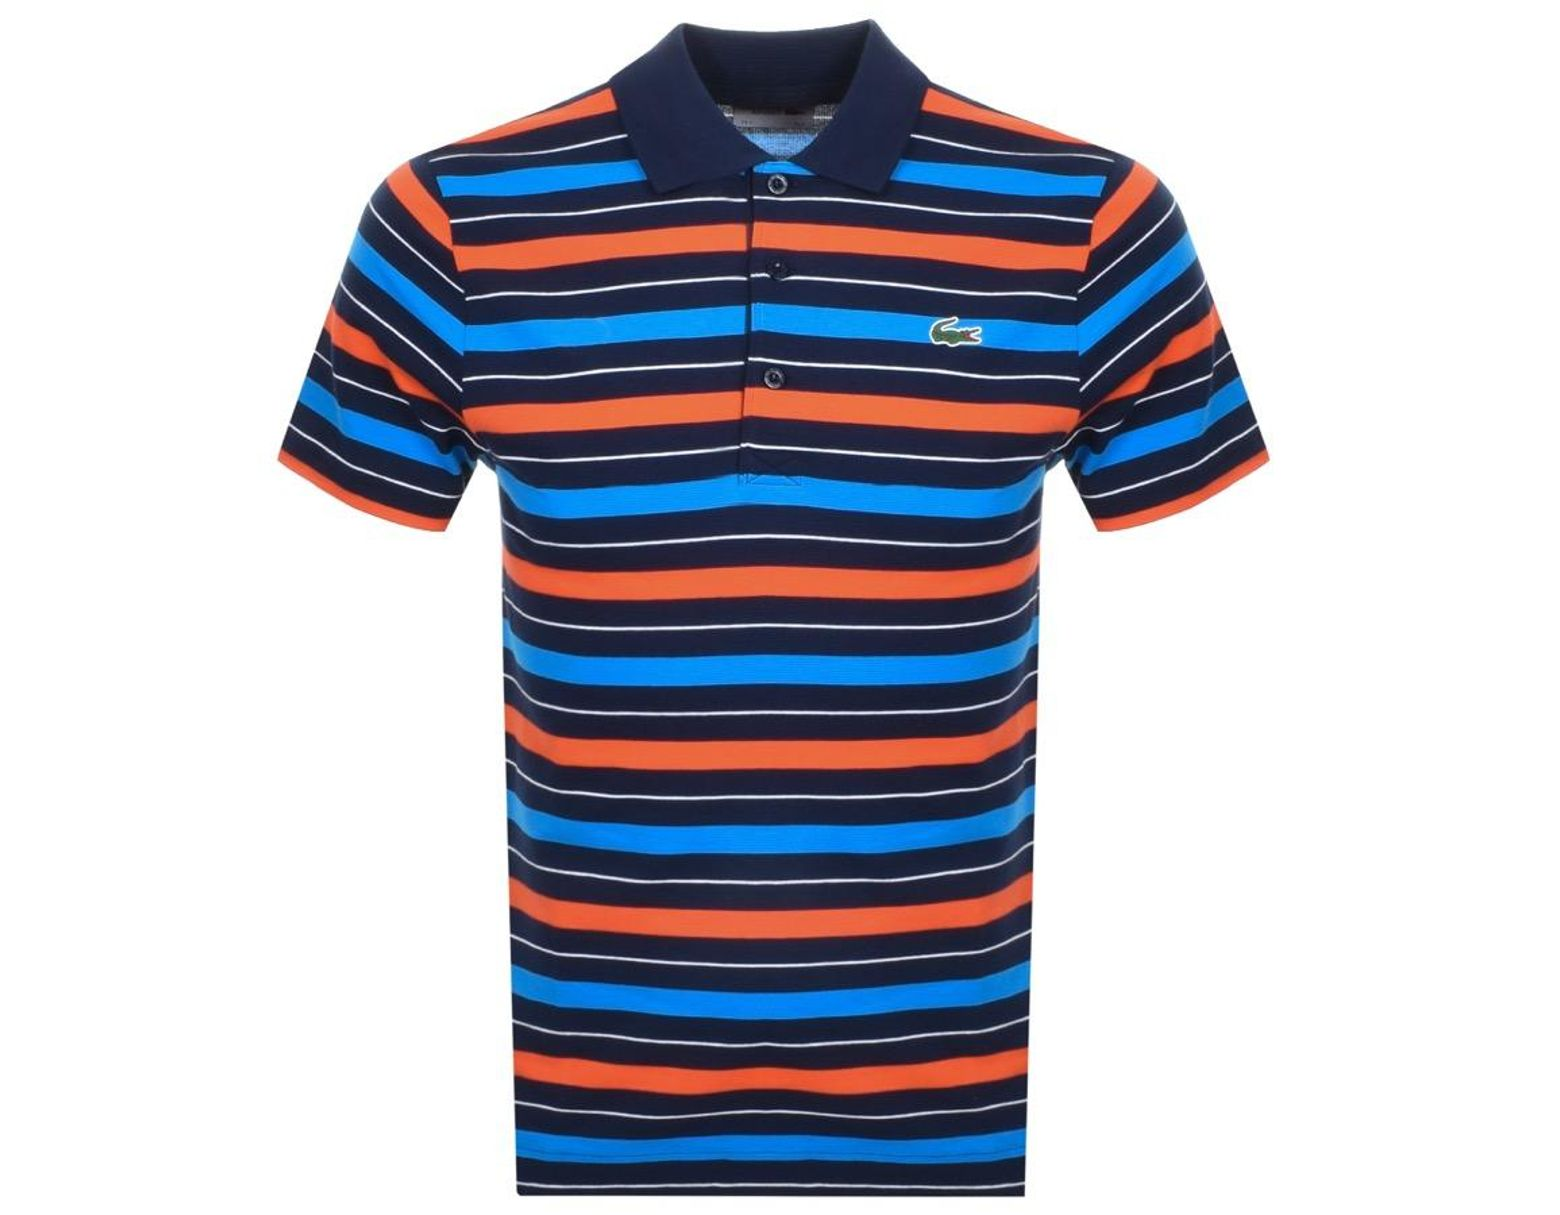 Polo Lacoste Blue T Shirt Sport In Lyst Men For Stripe Navy nPX0wkNOZ8